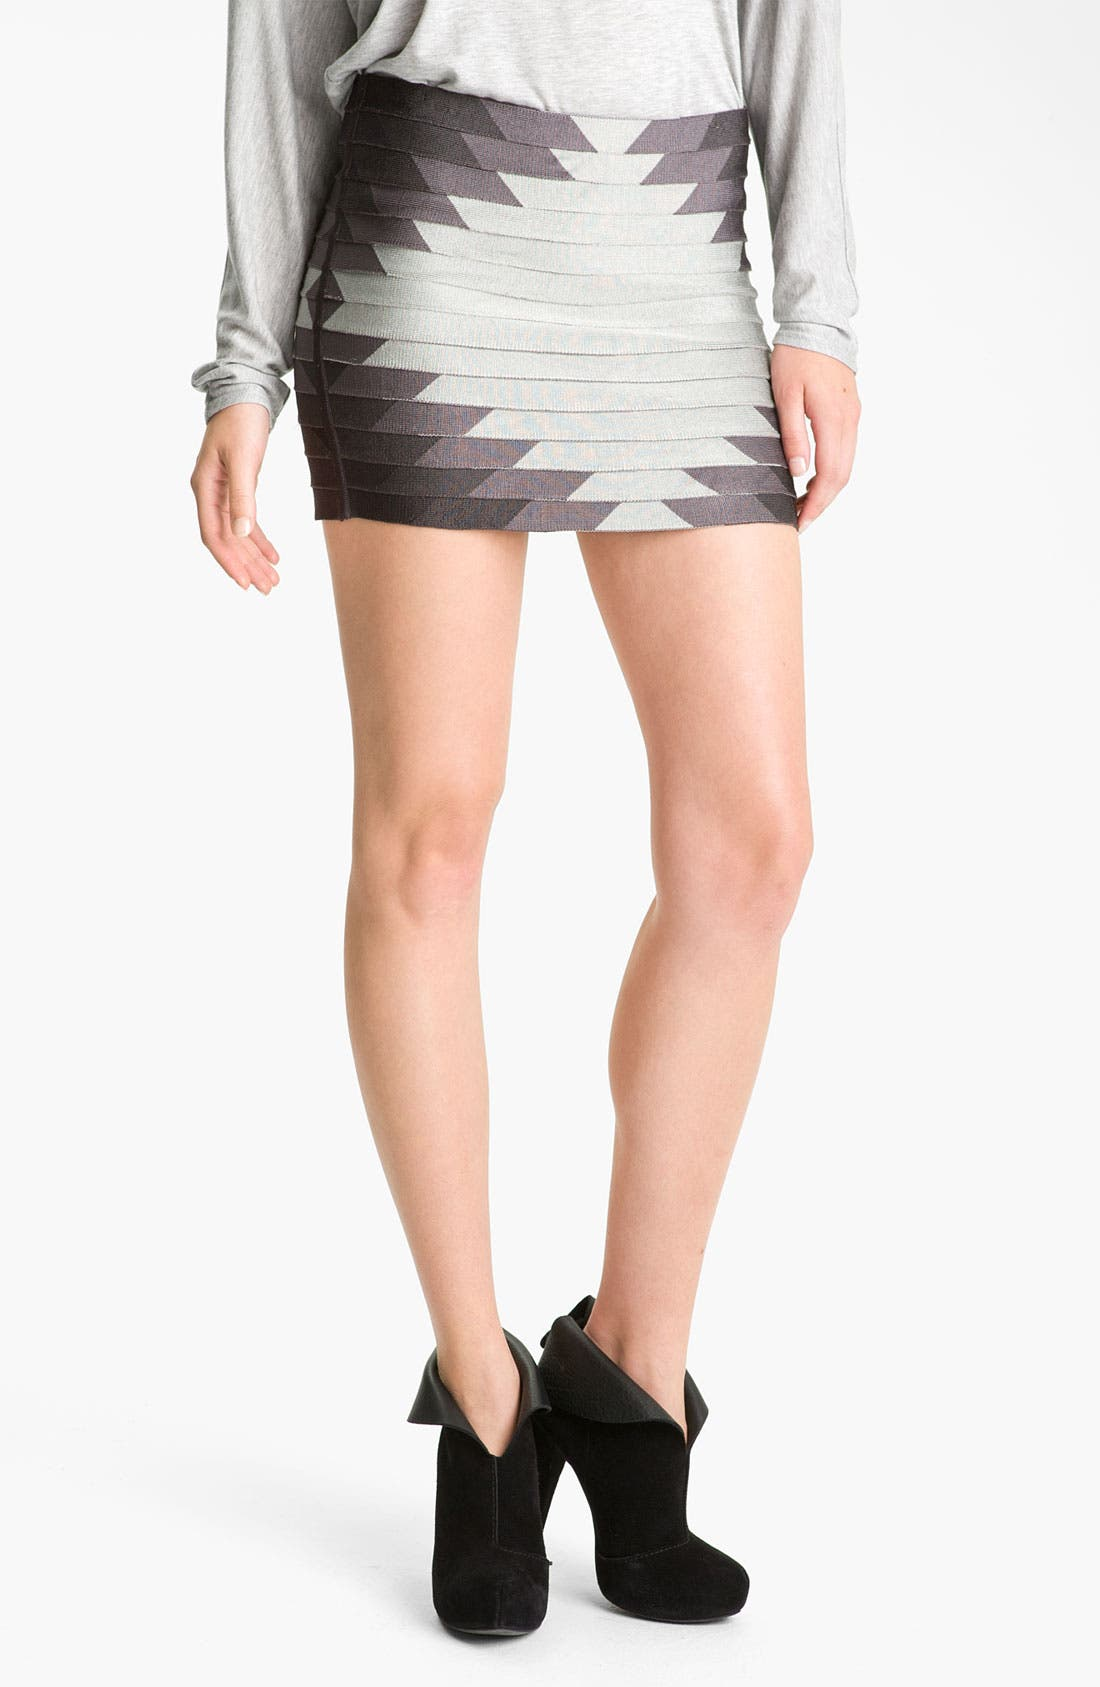 Alternate Image 1 Selected - Haute Hippie 'Aztec' Bandage Skirt